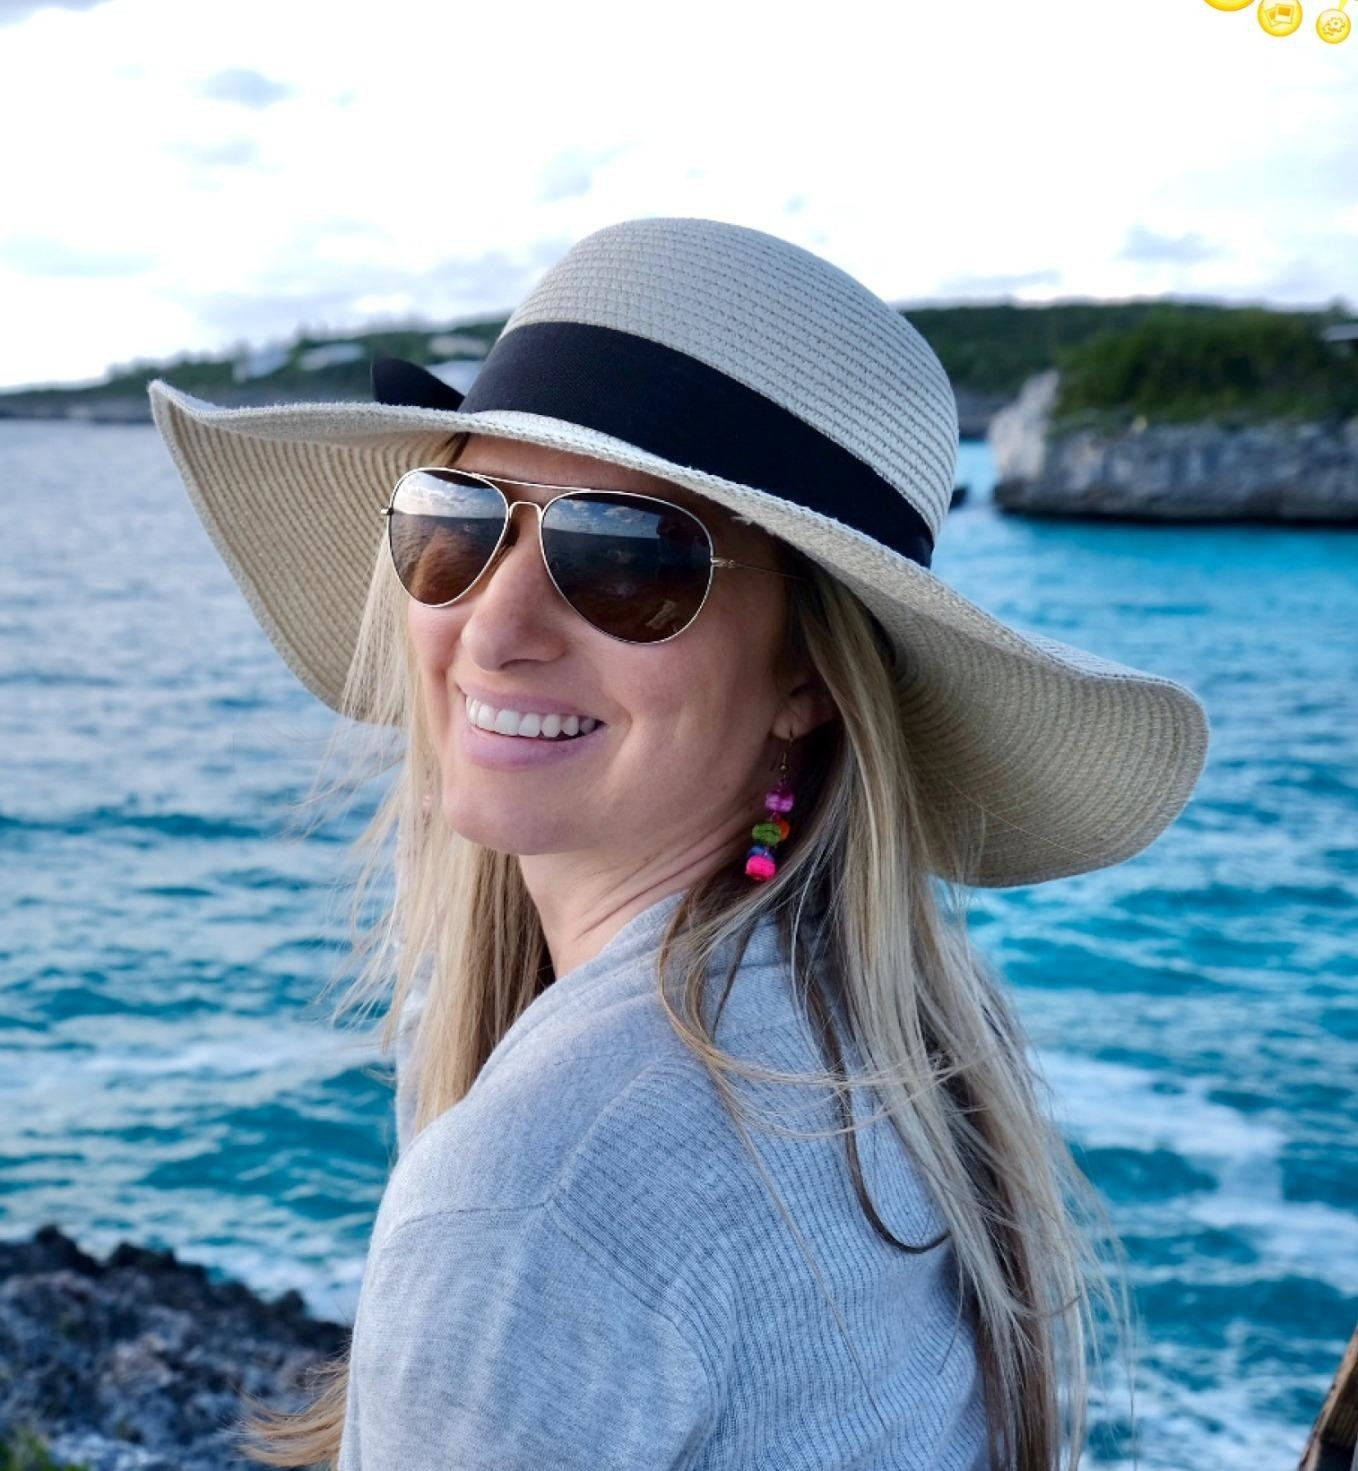 Reviewer wearing a tan hat with black ribbon